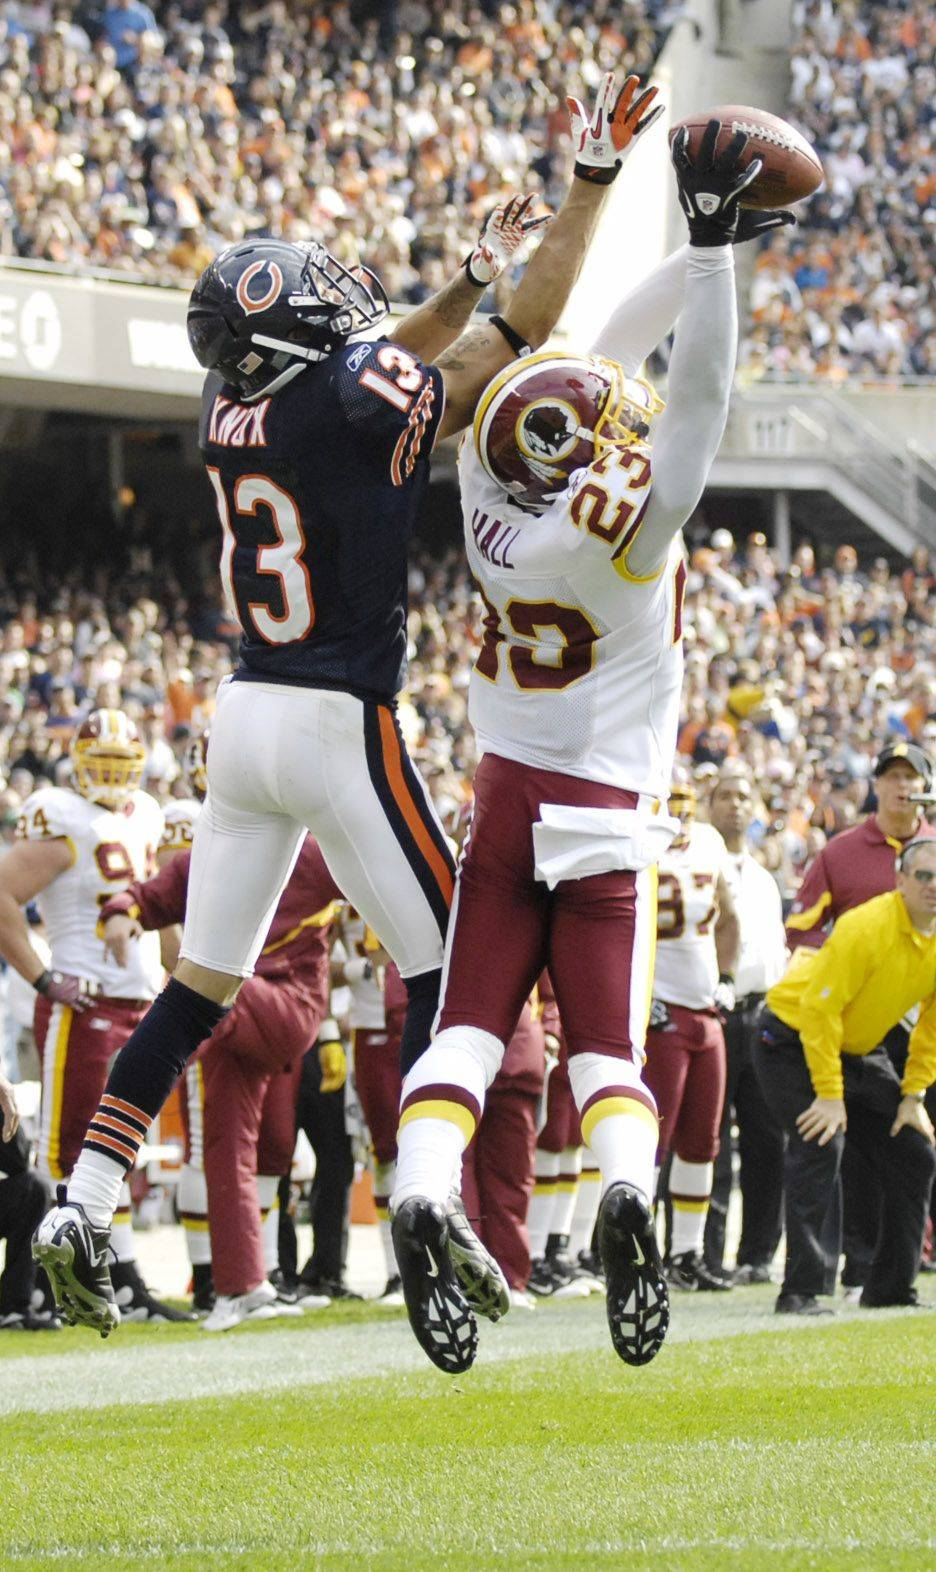 Washington Redskins cornerback DeAngelo Hall intercepts a Jay Cutler pass intended for Chicago Bears wide receiver Johnny Knox.